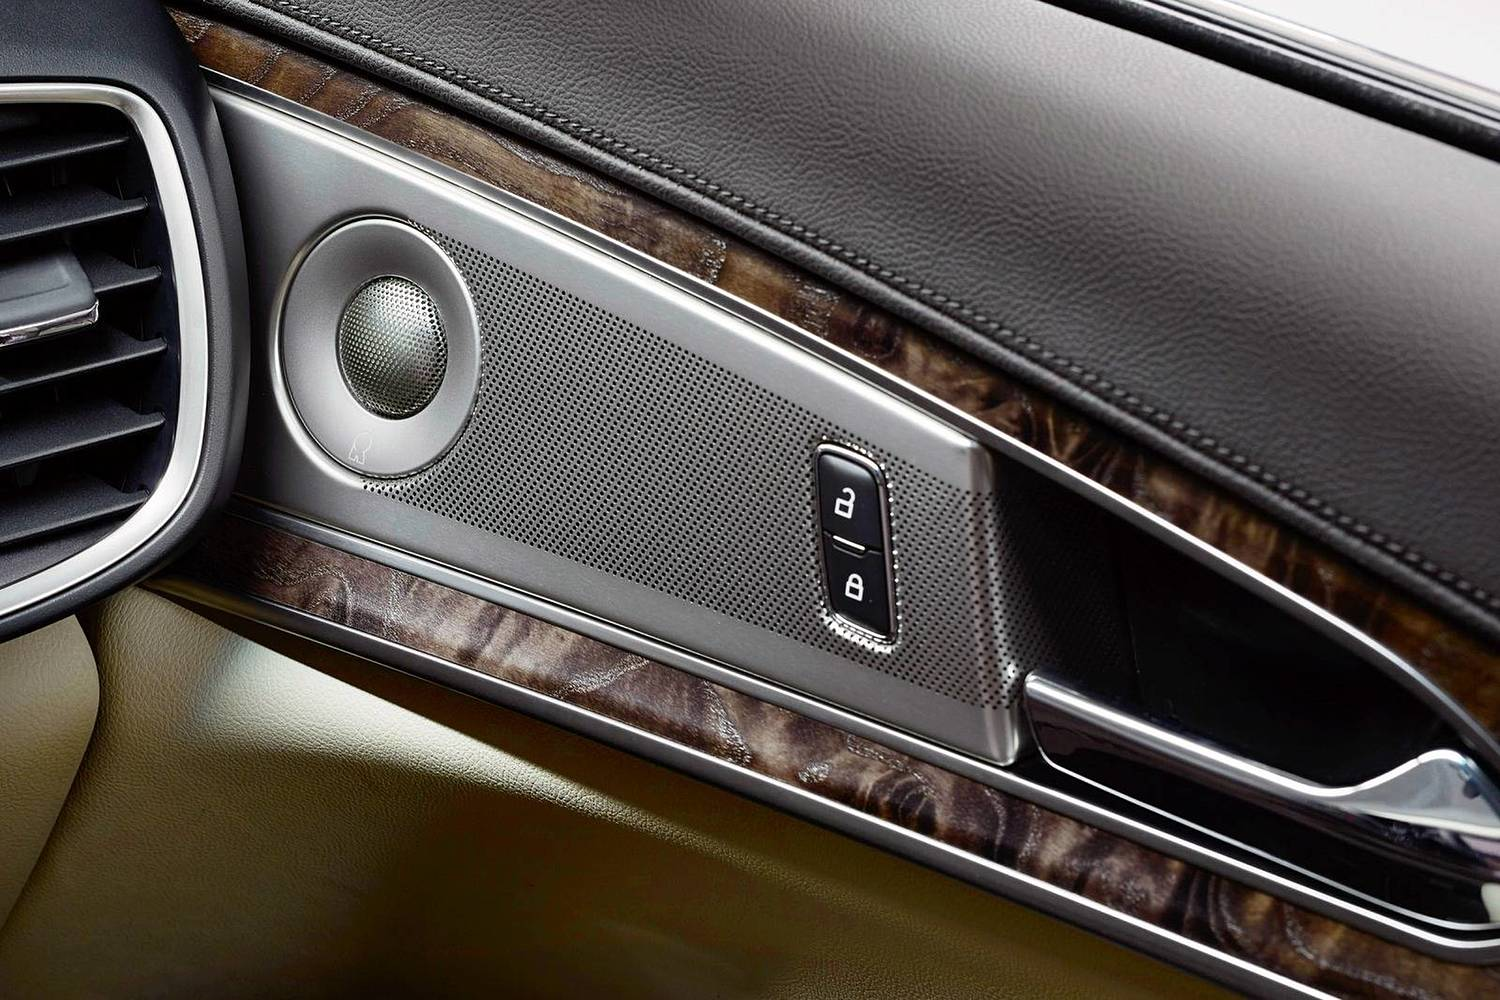 Lincoln MKX Reserve 4dr SUV Interior Detail (2017 model year shown)